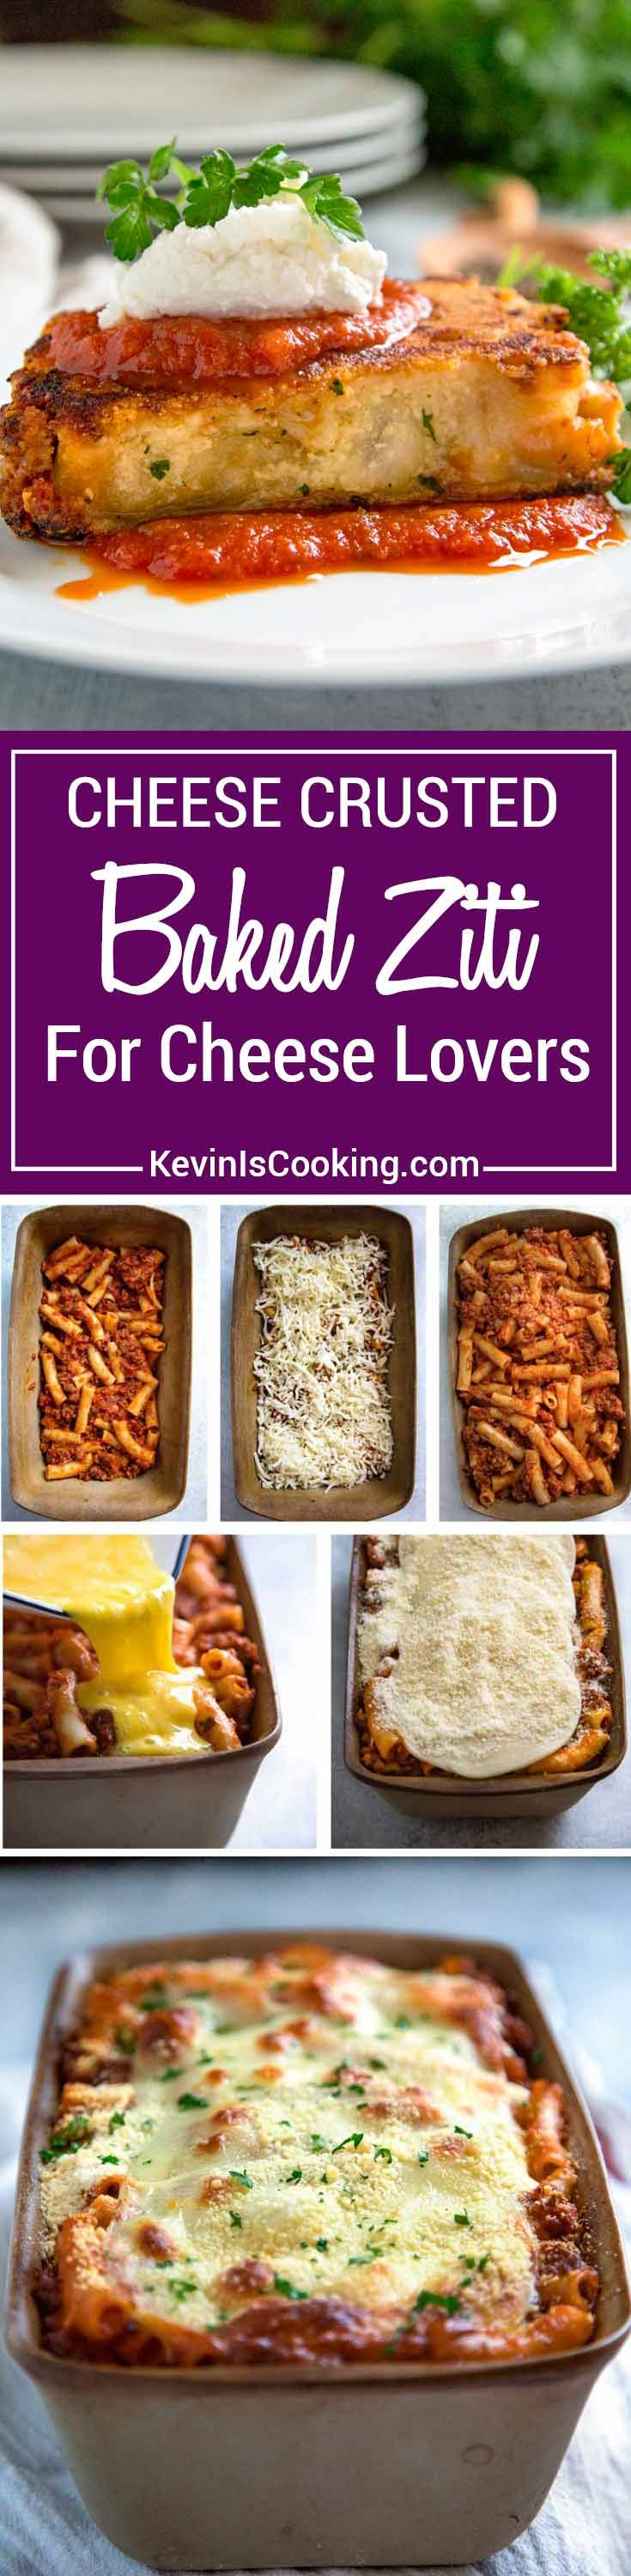 Cheese Crusted Baked Ziti - This classic baked ziti with a bolognese sauce has extra cheese pan fried on each side for extra cheesy goodness. via @keviniscooking